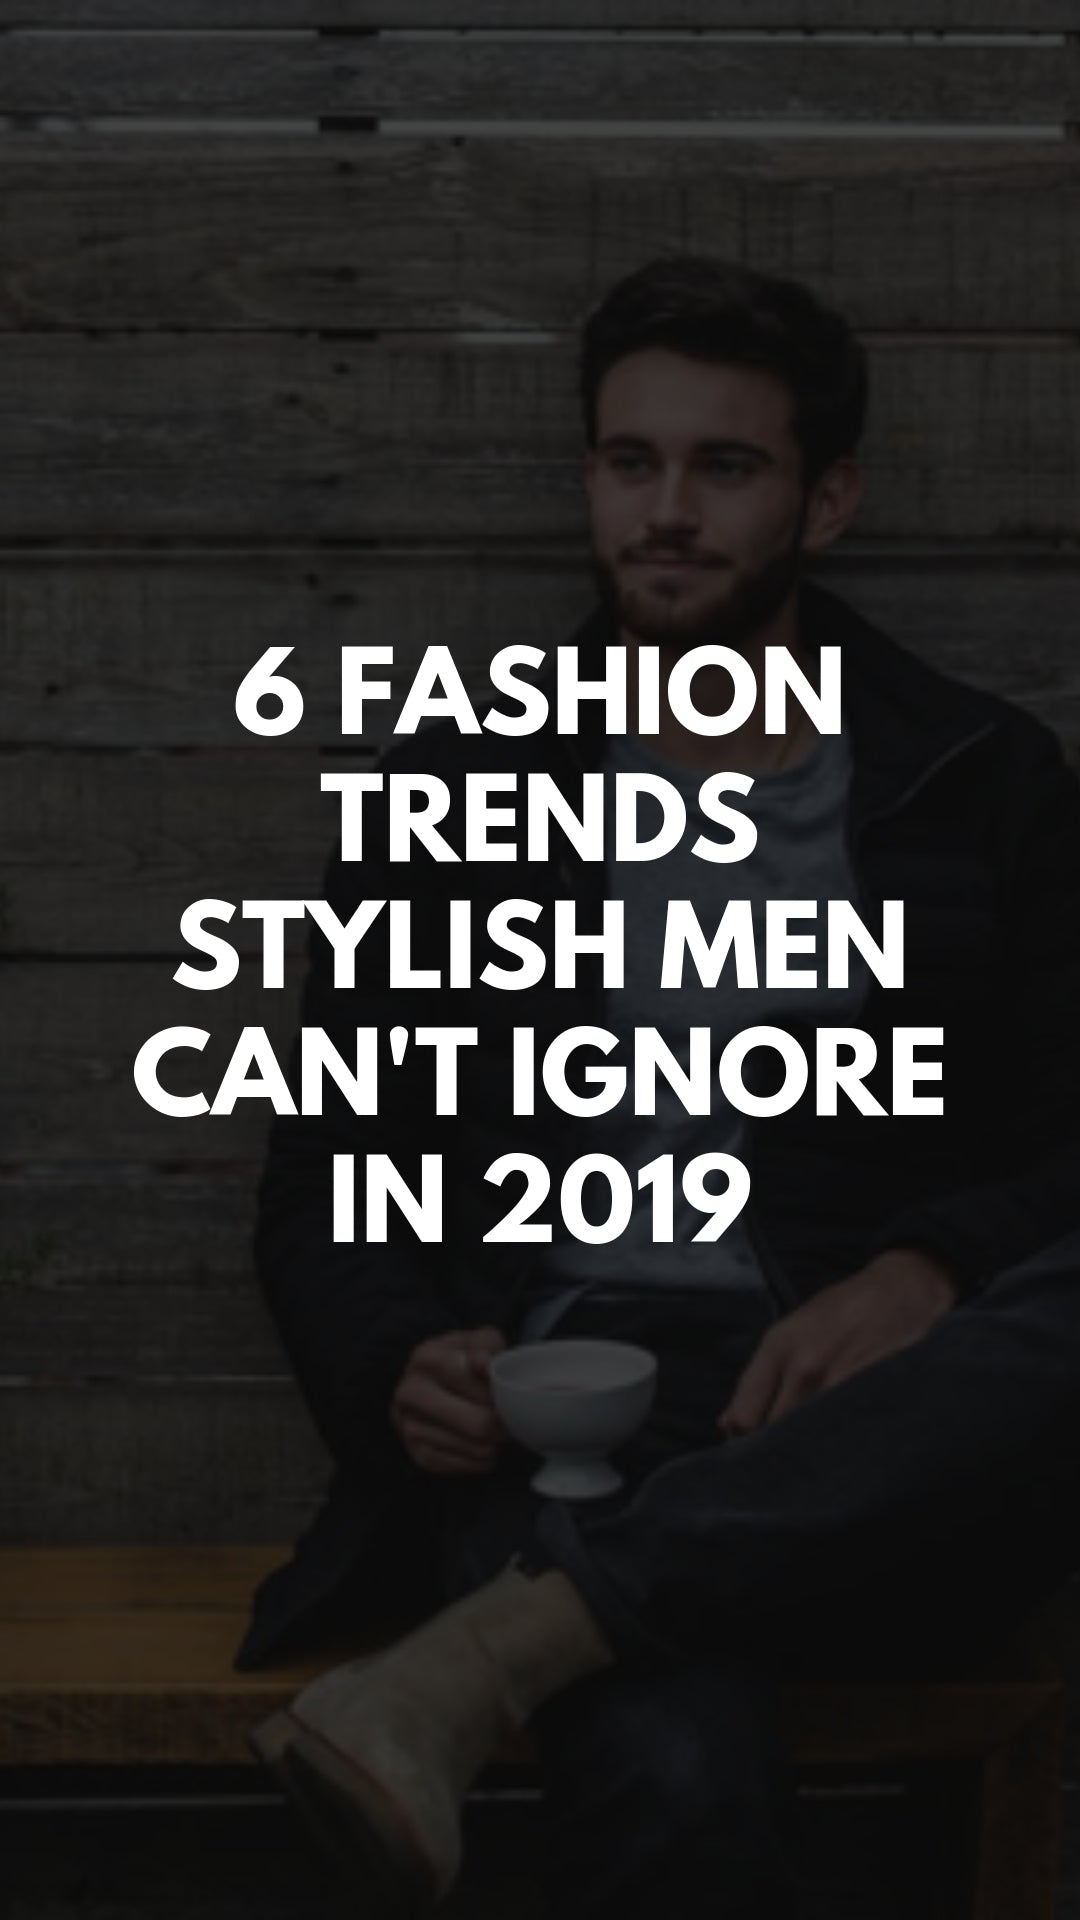 6 Fashion Trends Stylish Men Can't Ignore in 2019